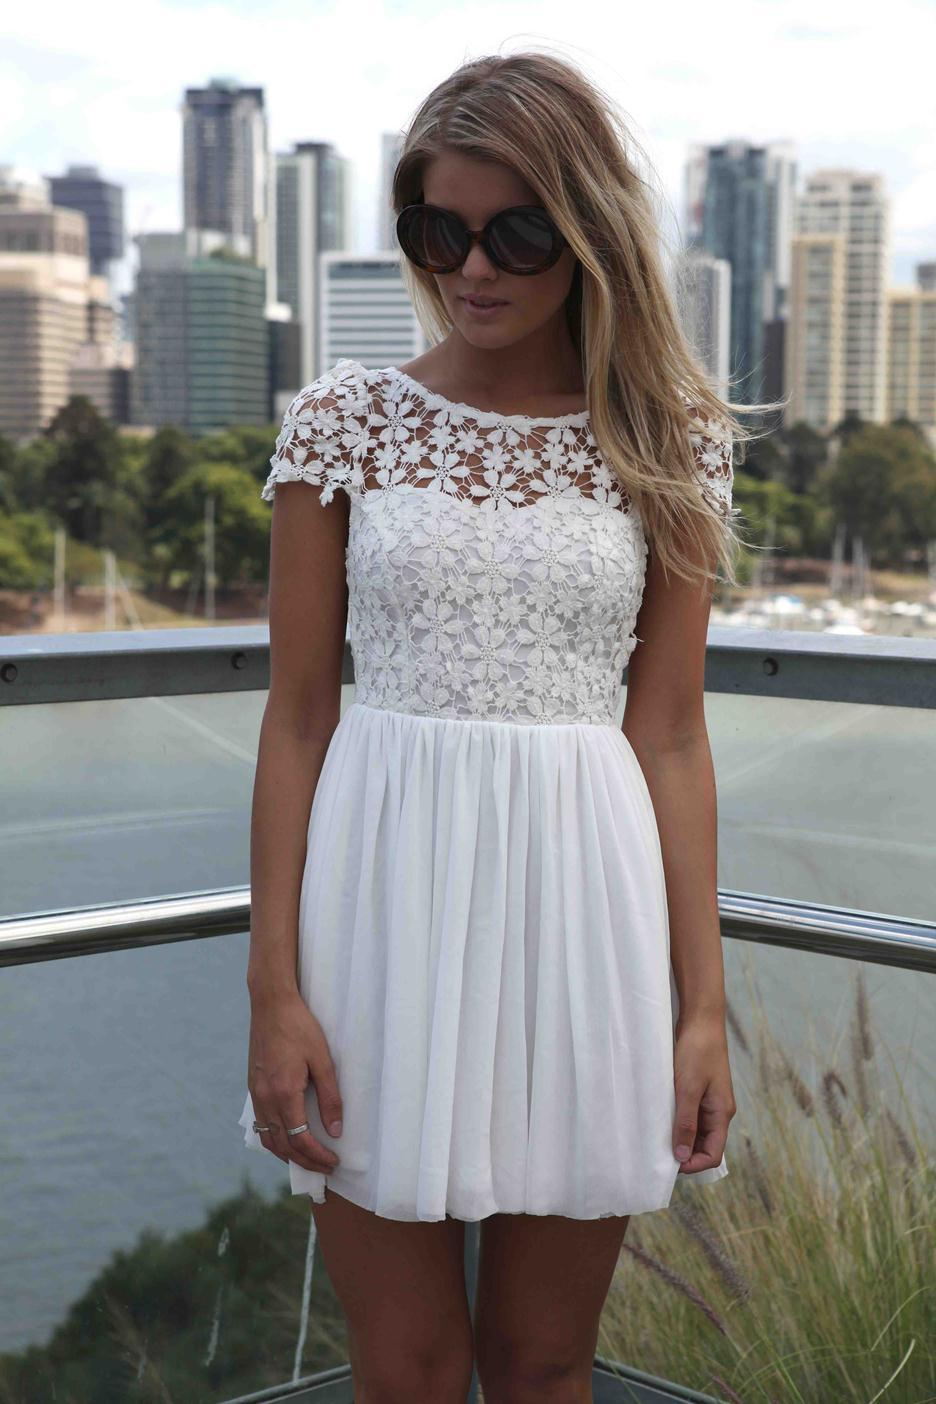 fc0854be2277a Wholesale 2015 Fashion Women Summer Dress Crochet Embroidered Patchwork  Girl Pleated Tulle Chiffon Lace Backless Sexy Party Club Dresses Sexy  Dresses ...